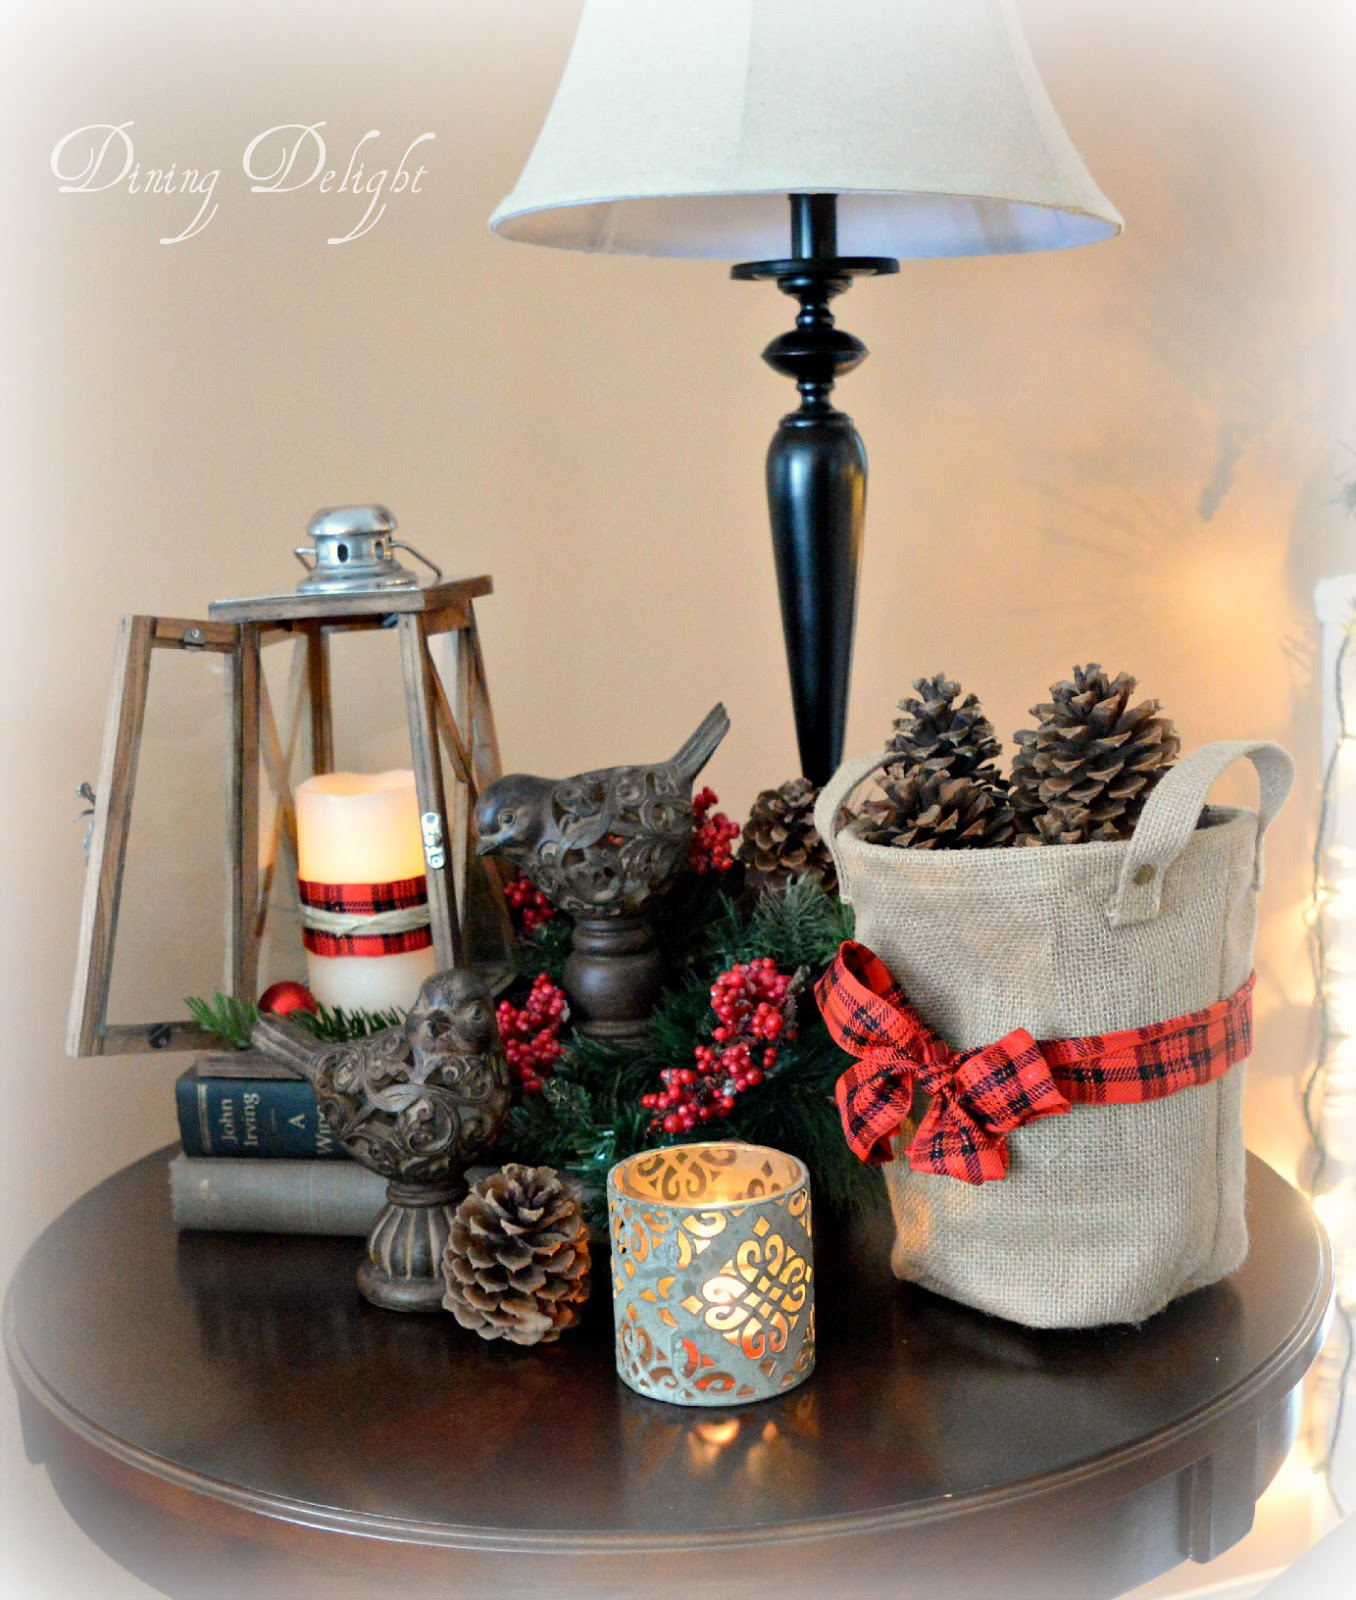 Dining Delight: Christmas Decor for End Tables